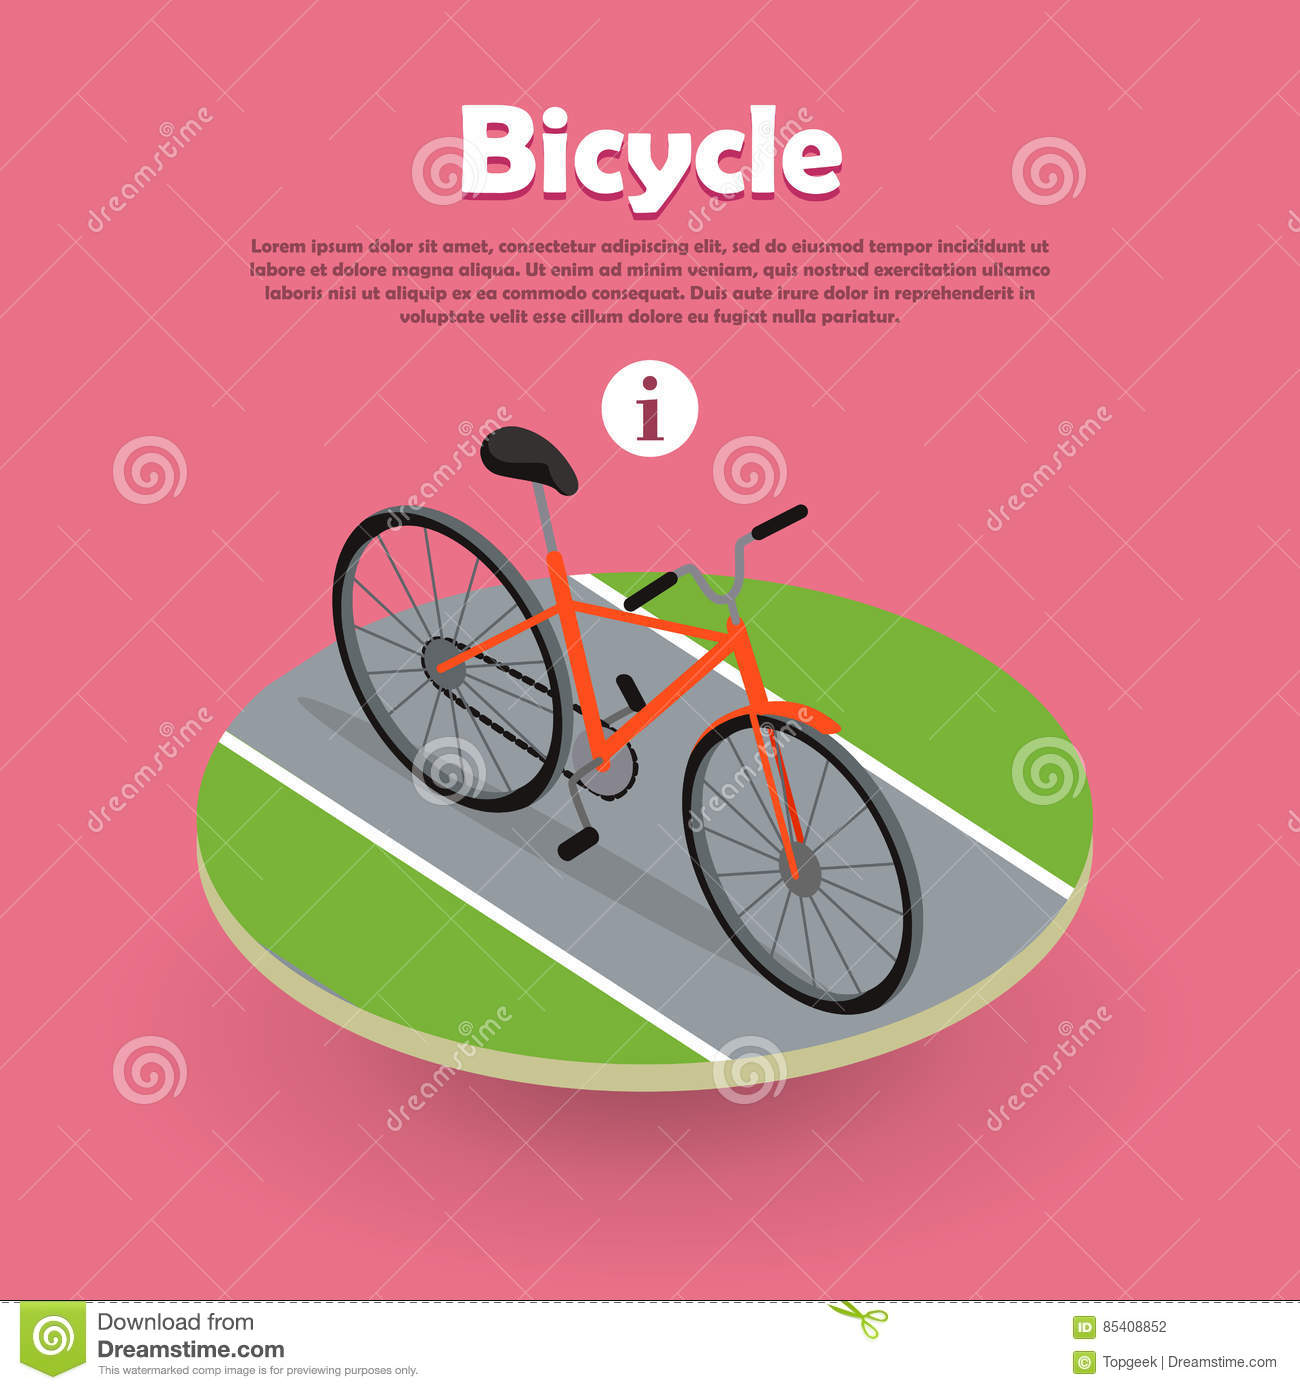 Bicycle Icon Isometric Design on Road Web Banner.